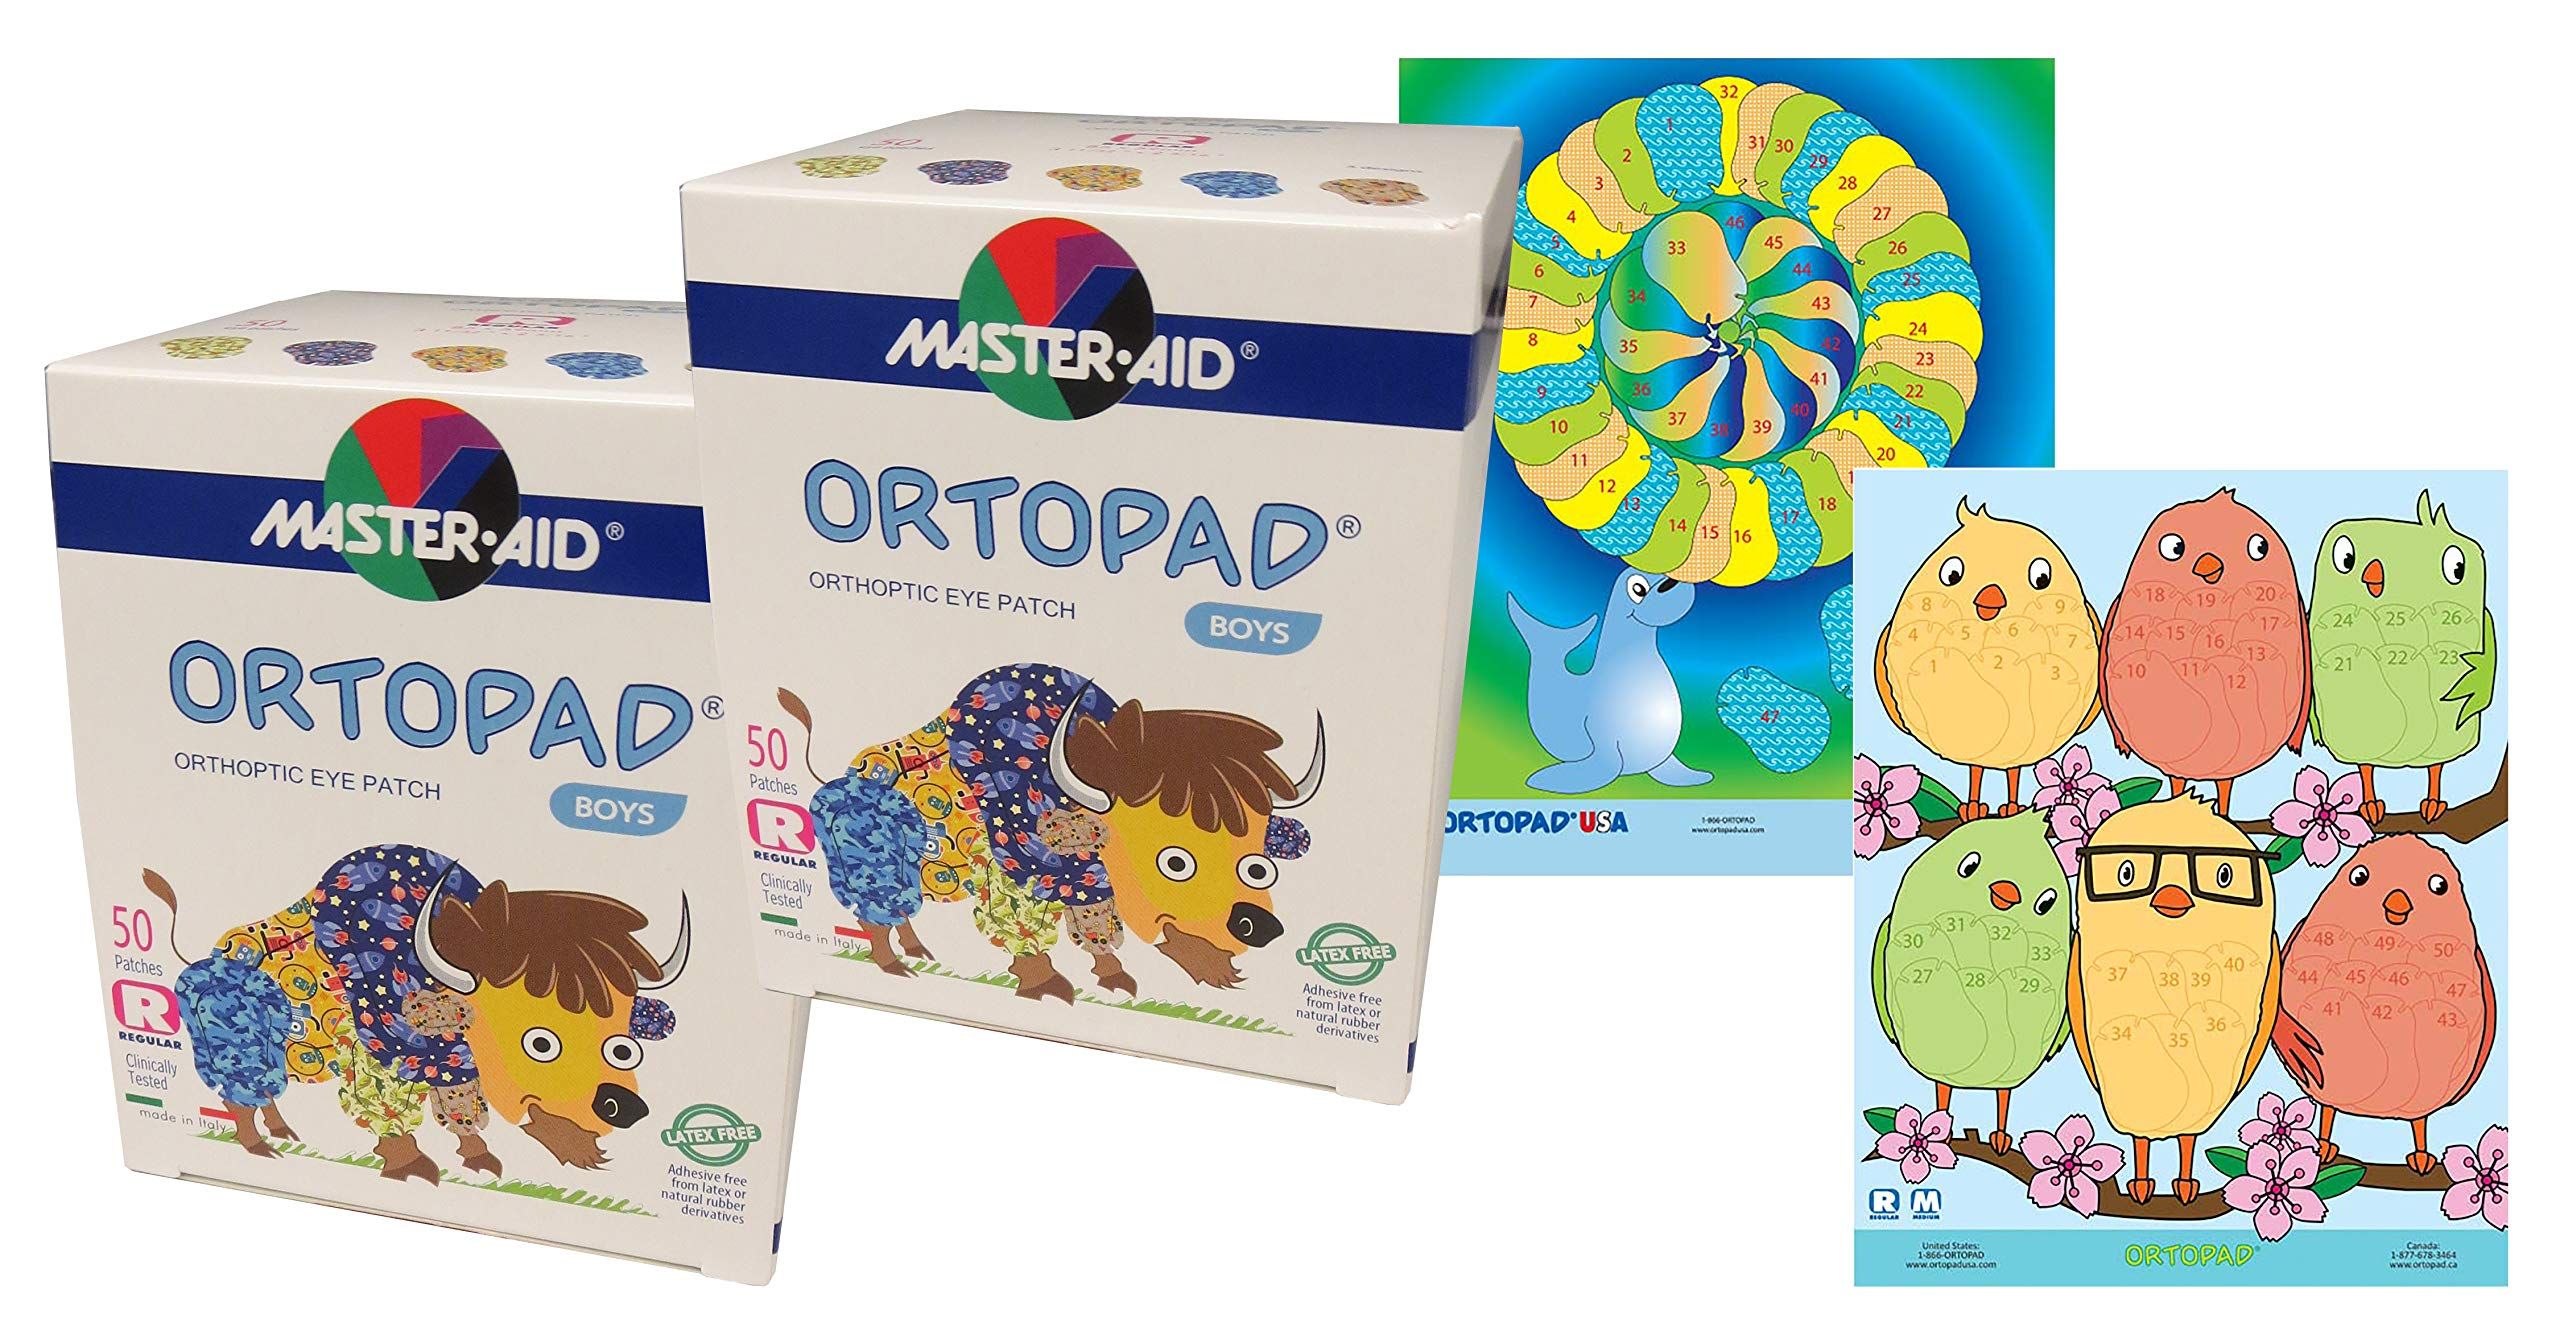 Ortopad® Bamboo 100-Pack for Boys, Adhesive Eye Patches, Regular Size, 2 Posters Included by Ortopad